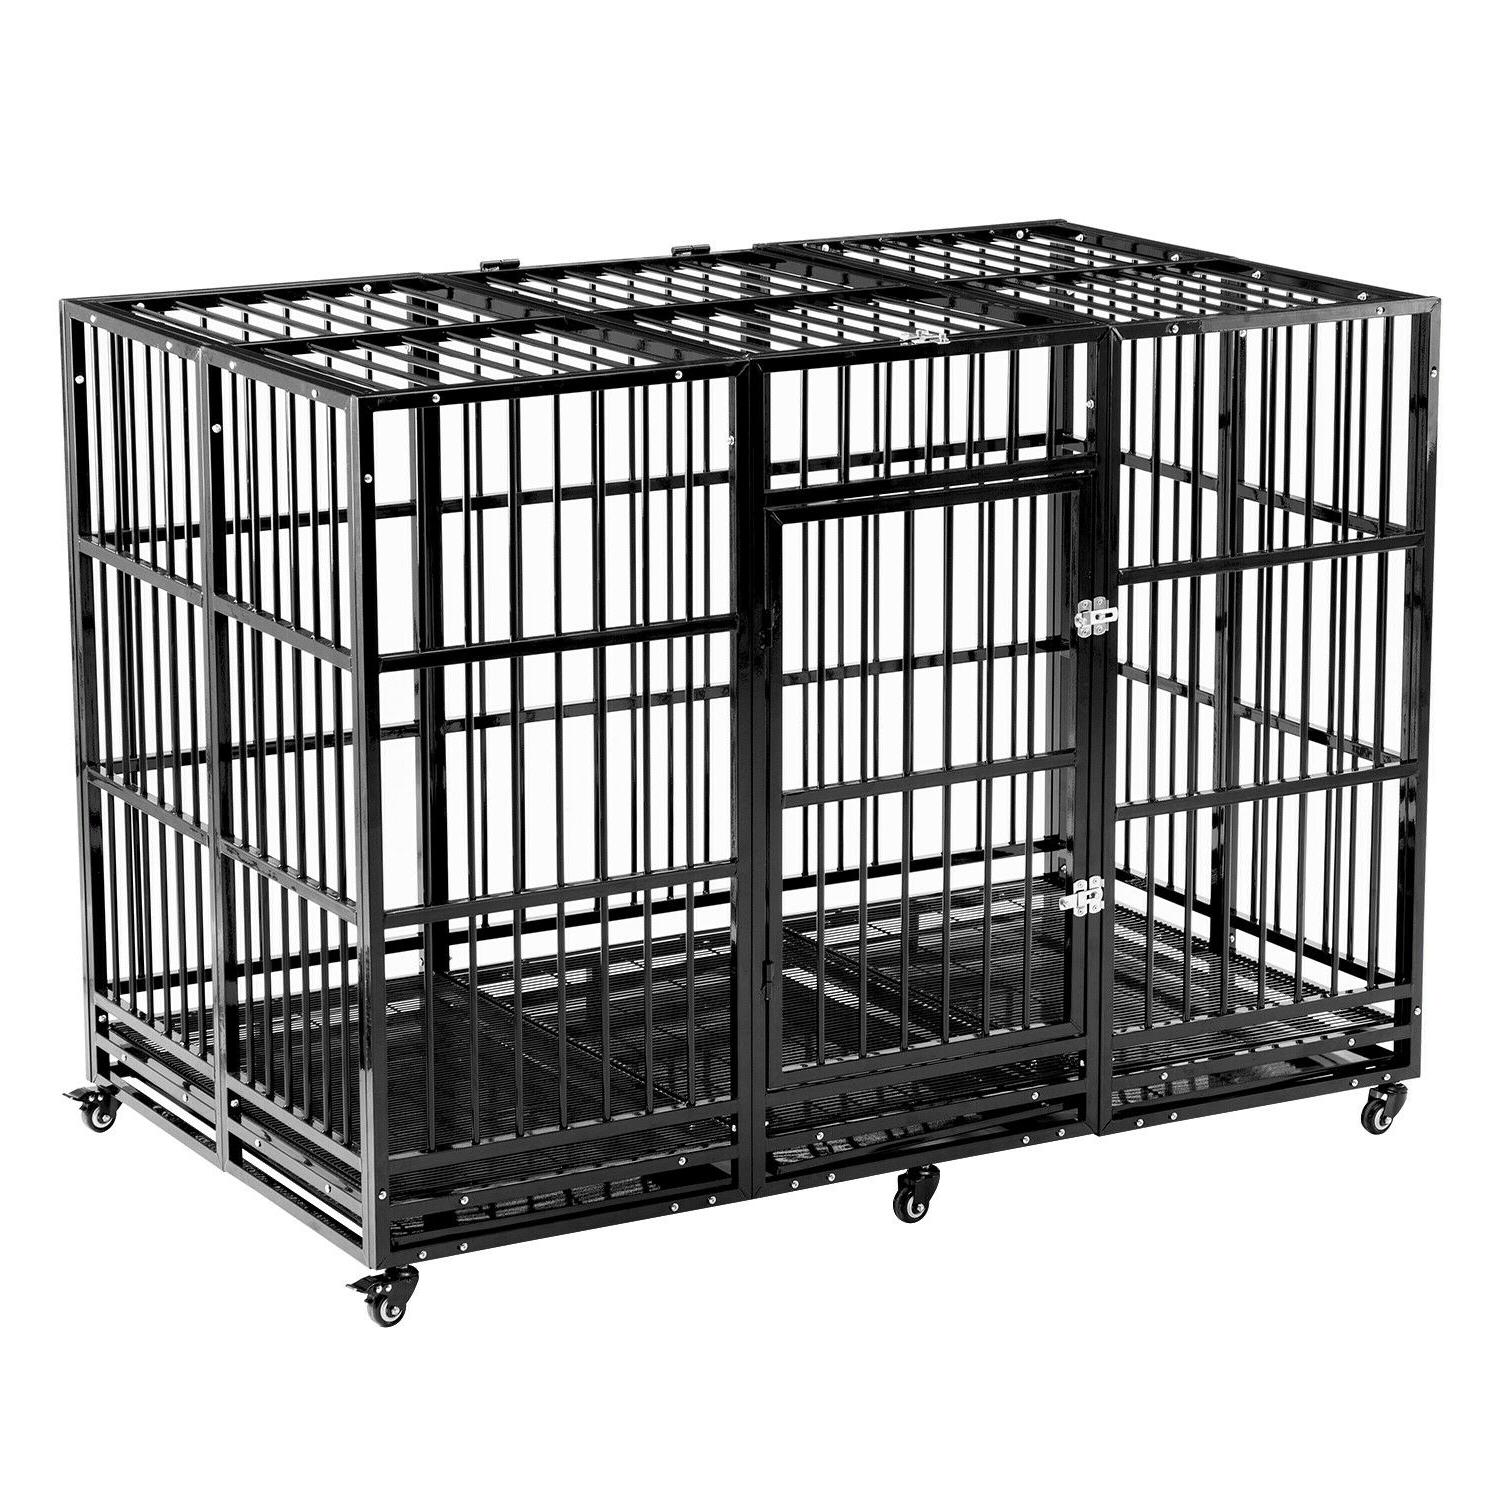 63'' Dog Crate Large Square Heavy Duty & Tray